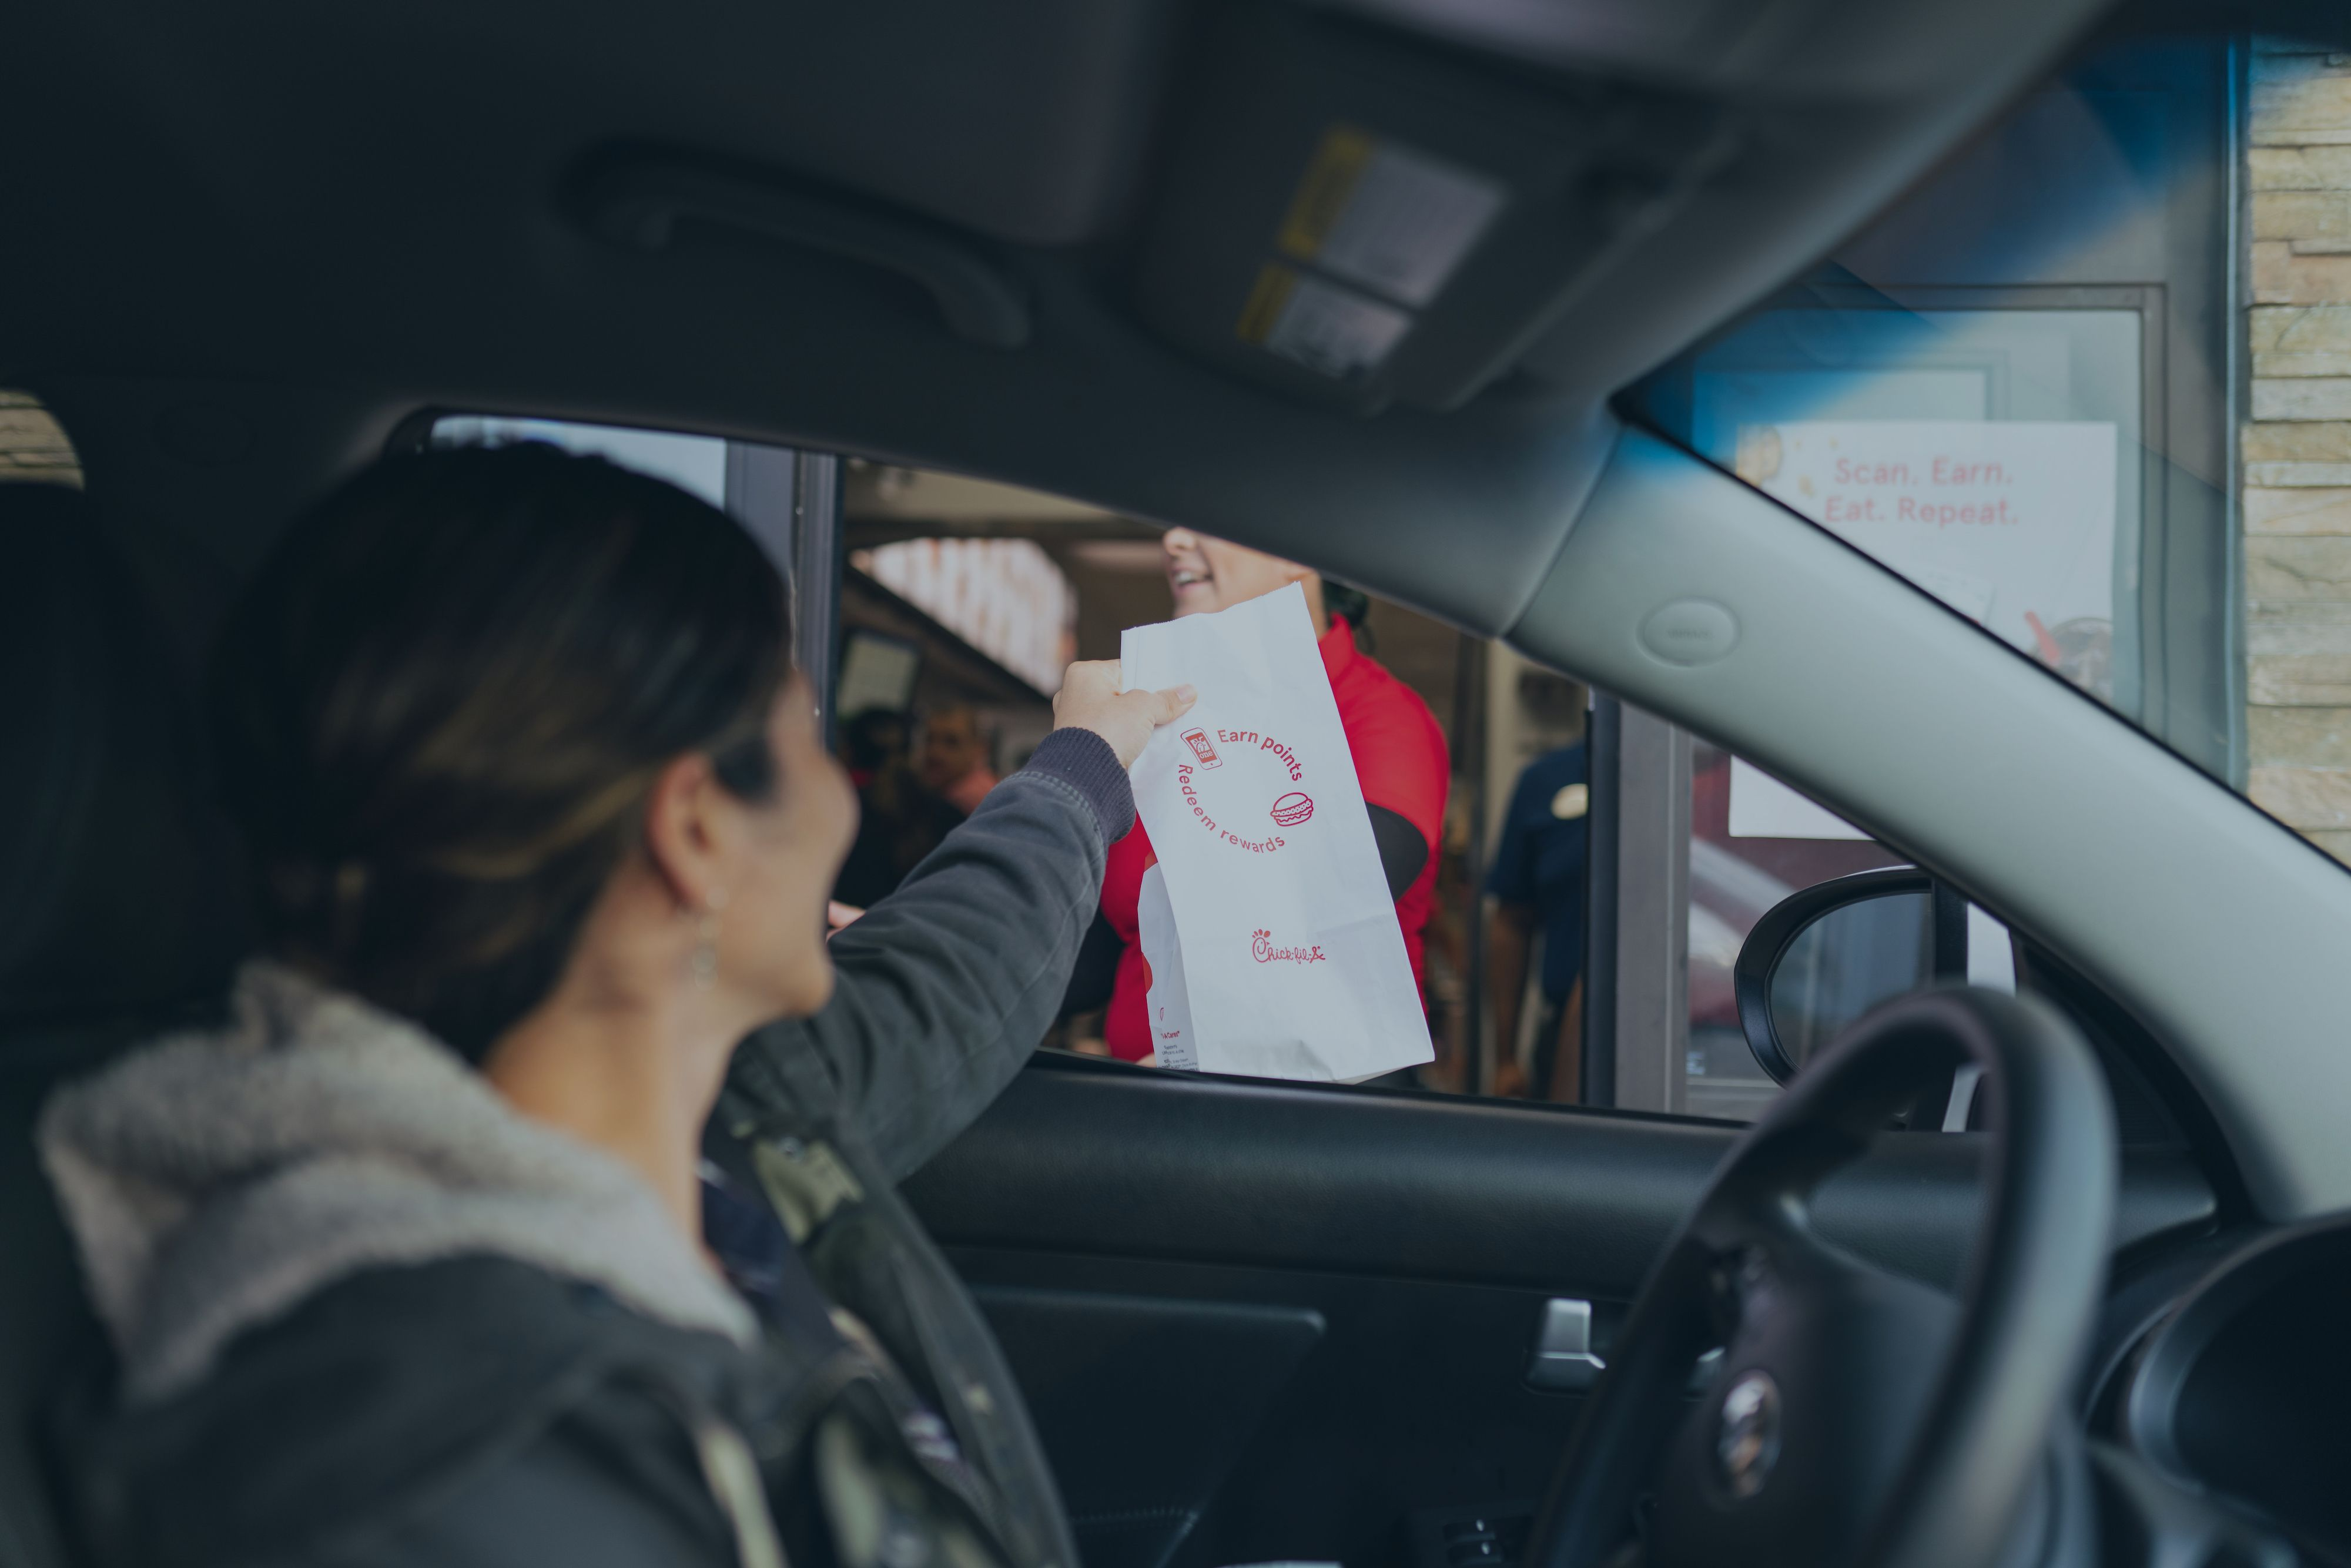 A woman at a Chik-fil-a drivethrough accepting a bag from the attednant